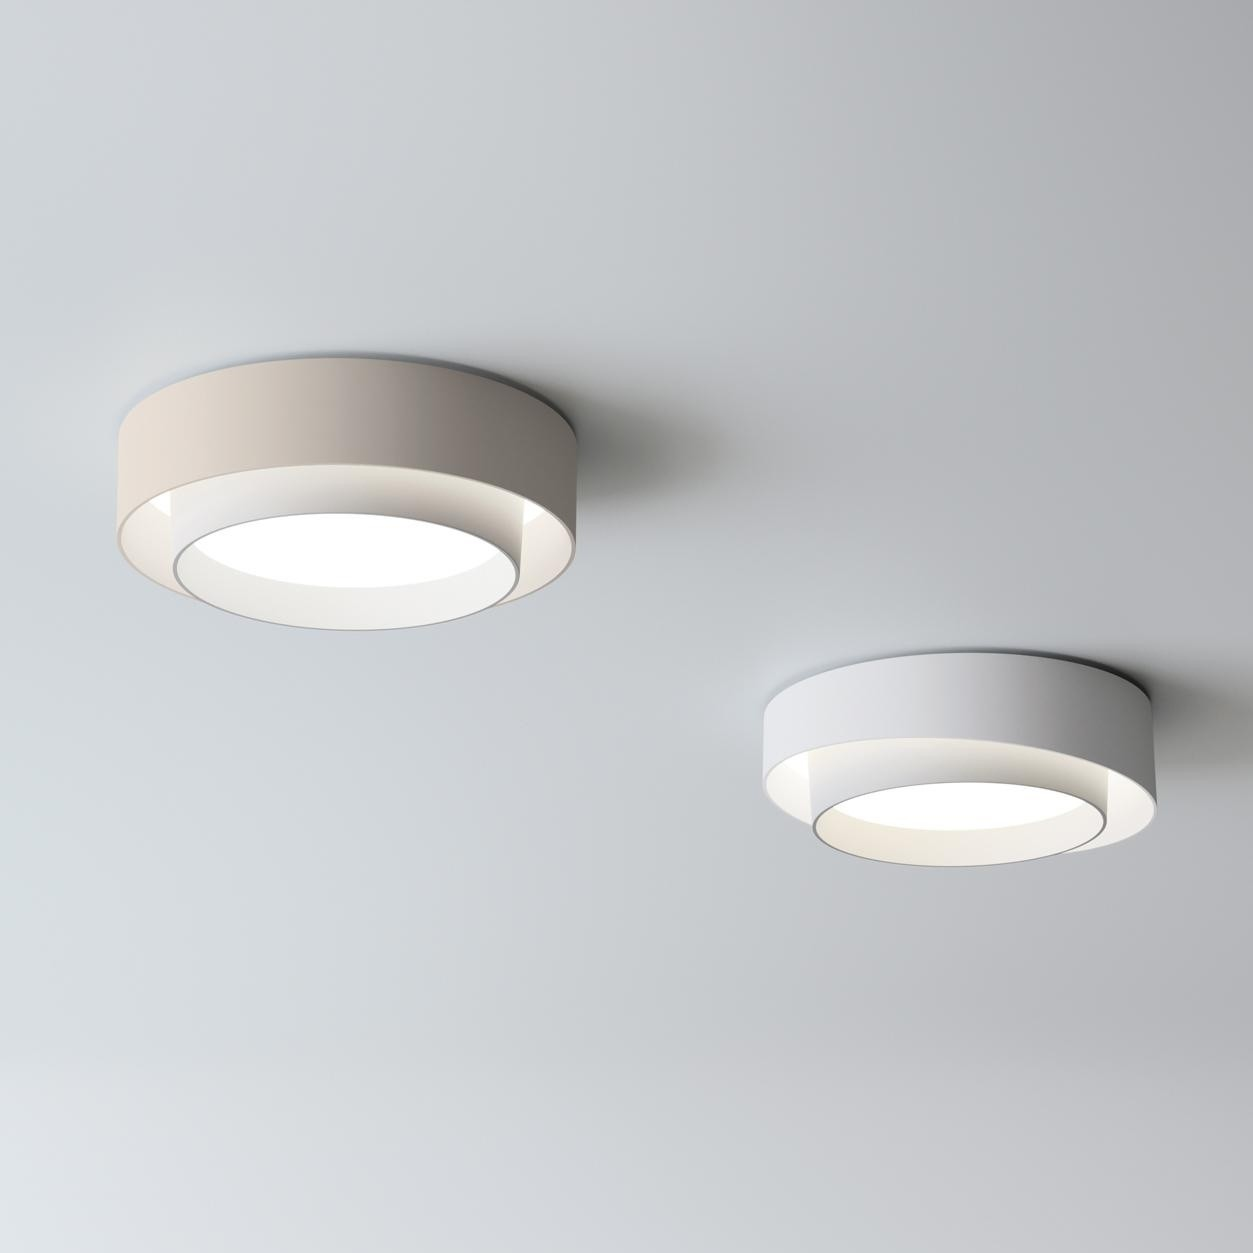 Vibia Centric 5700 Led Wall Ceiling